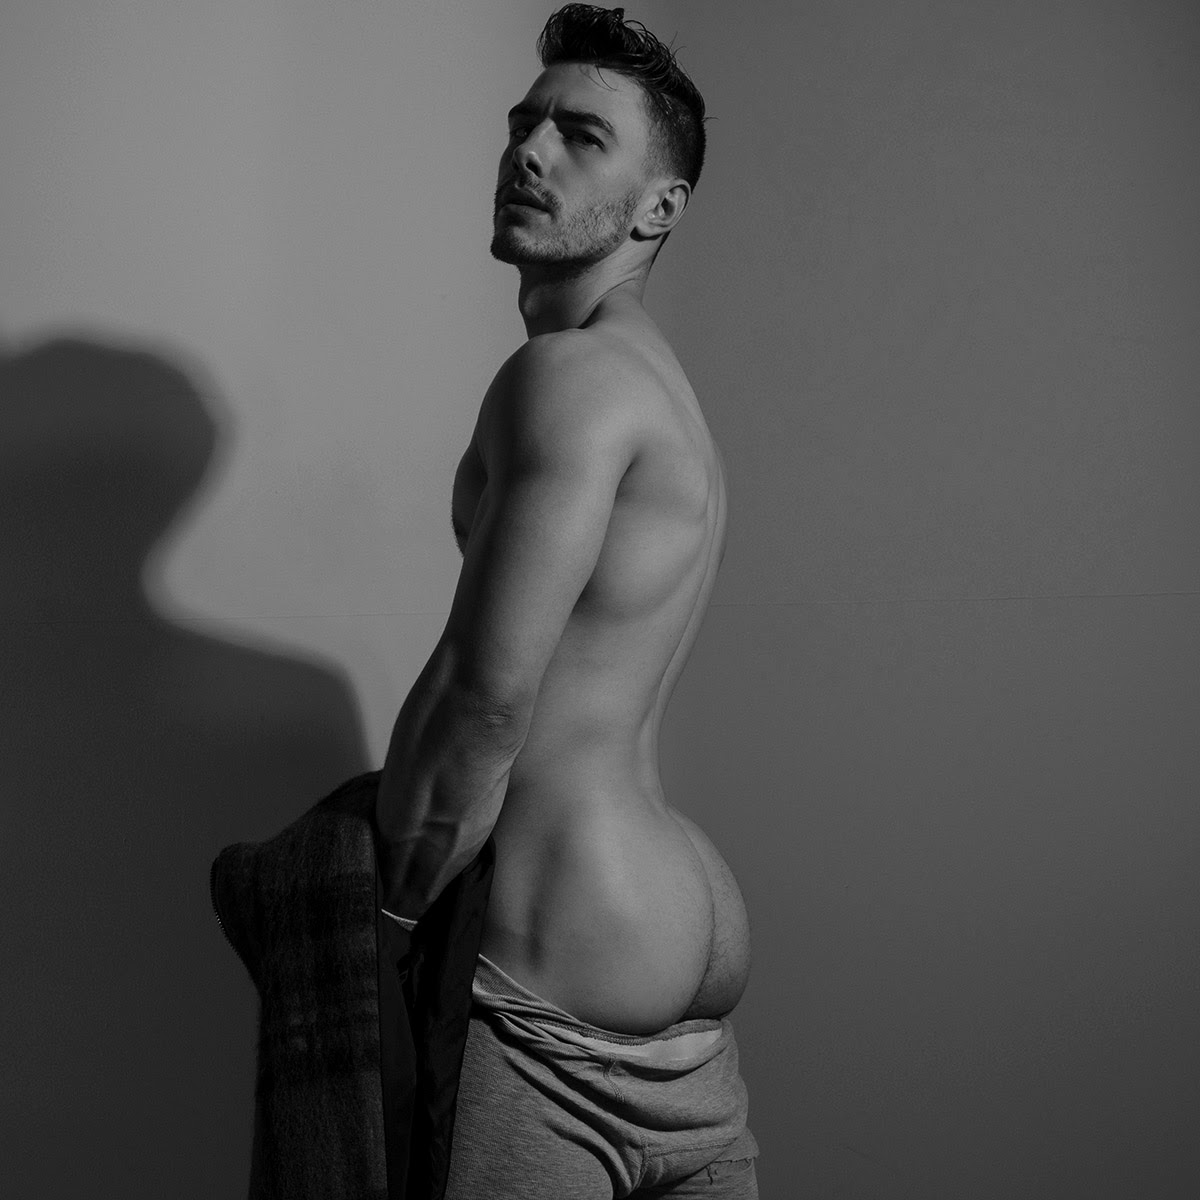 DominiC, by Rick Day NYC ft Dominic Adriano Albano (NSFW).